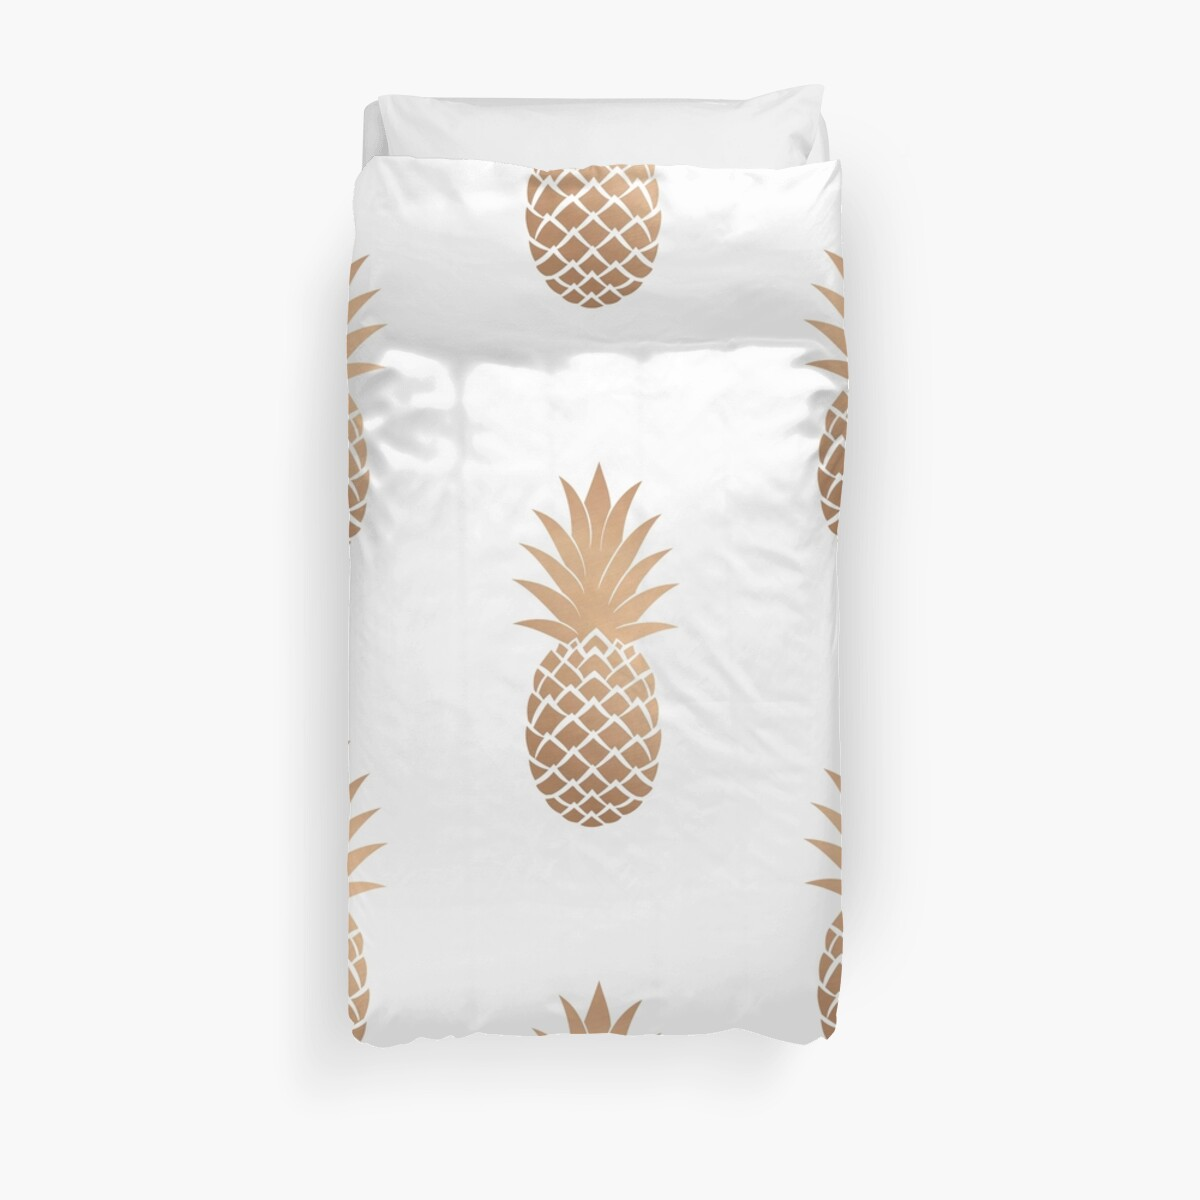 Gold Pineapples by PineLemon